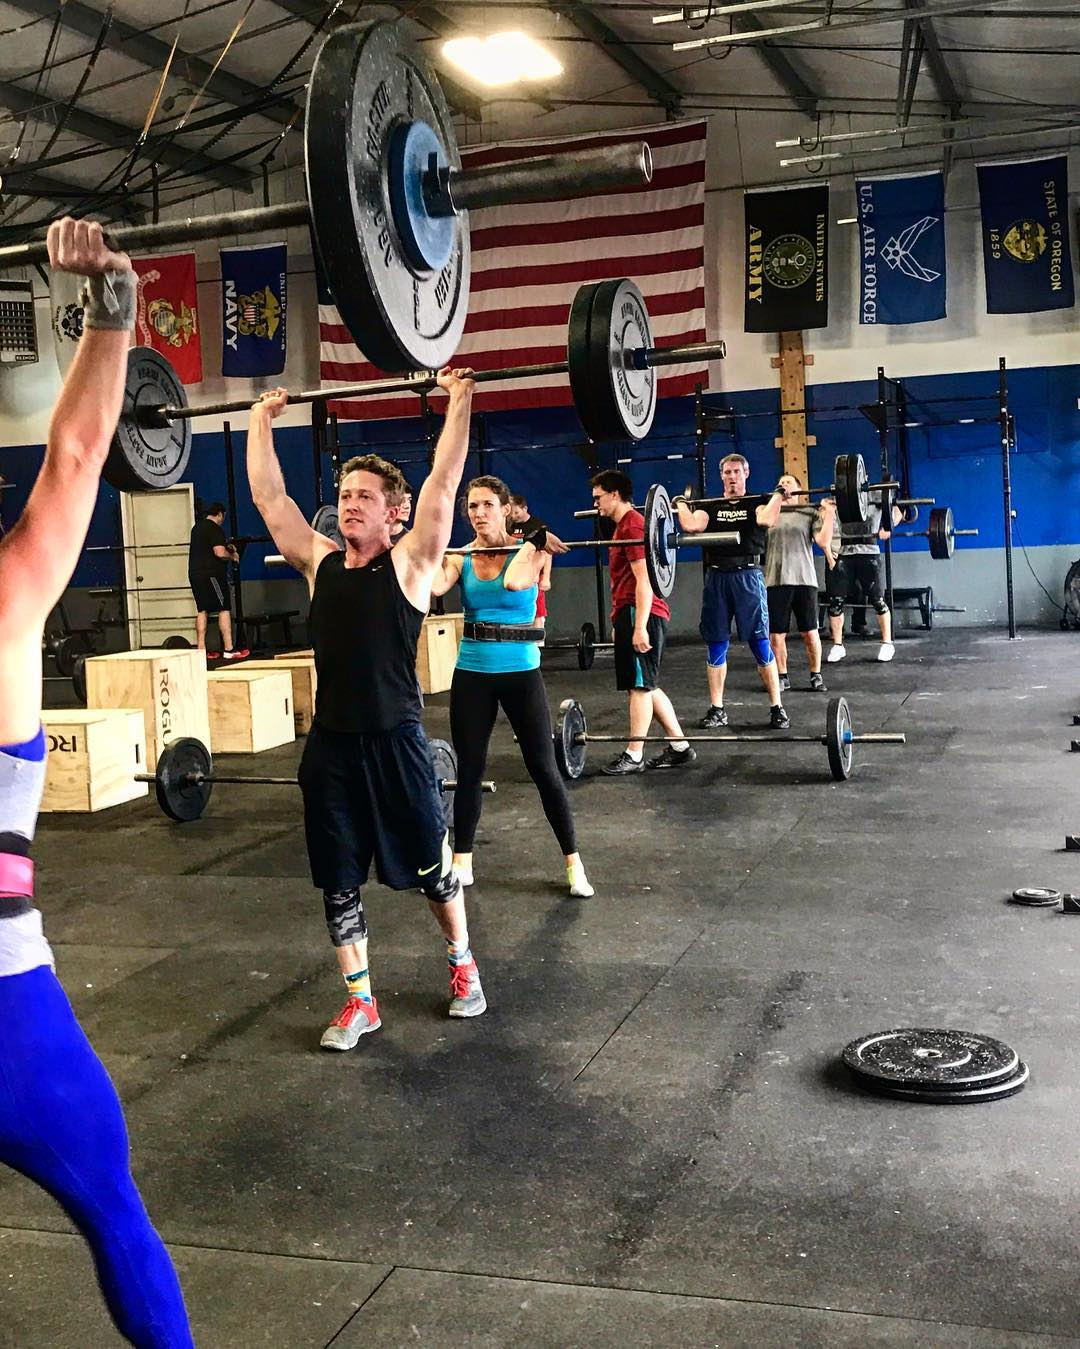 Noon getting pumped for the weekend! Still time to get in today to sweat! 💥💪🏽 • • • • #boomshockalocka #type44strong #type44 #inbend #centraloregon #reebok #fitfam